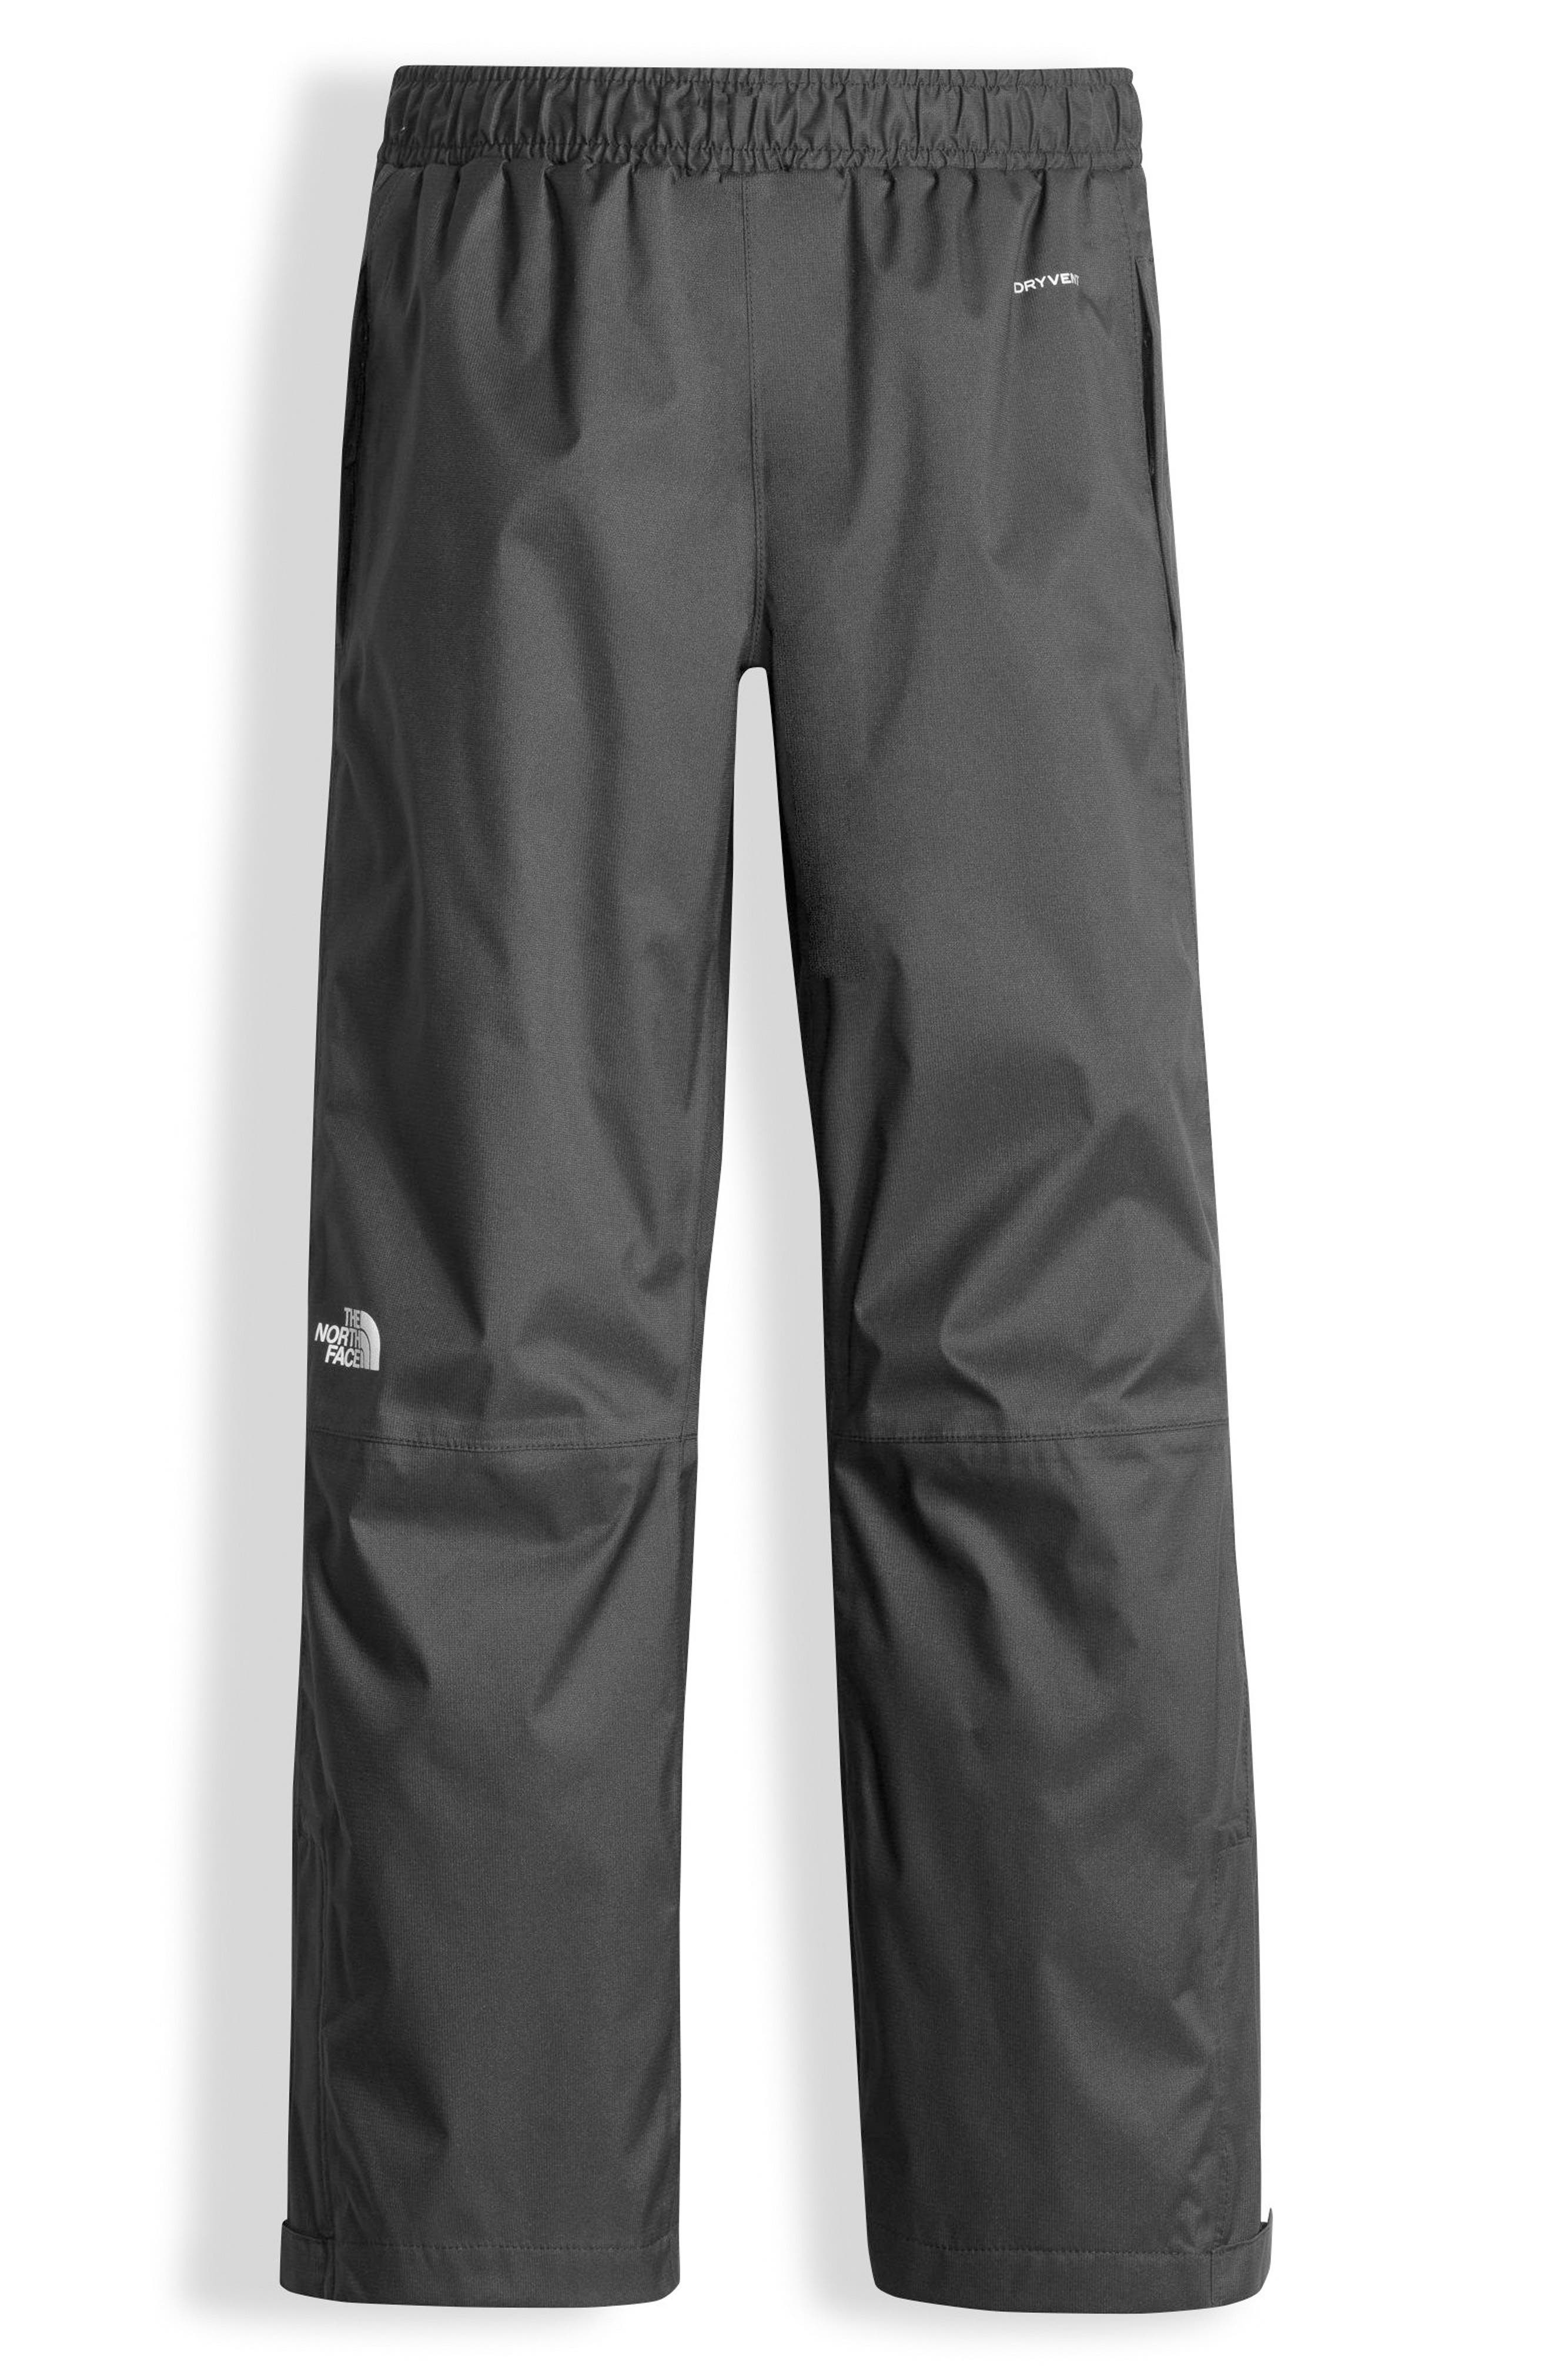 'Resolve' Waterproof Rain Pants,                             Main thumbnail 1, color,                             021